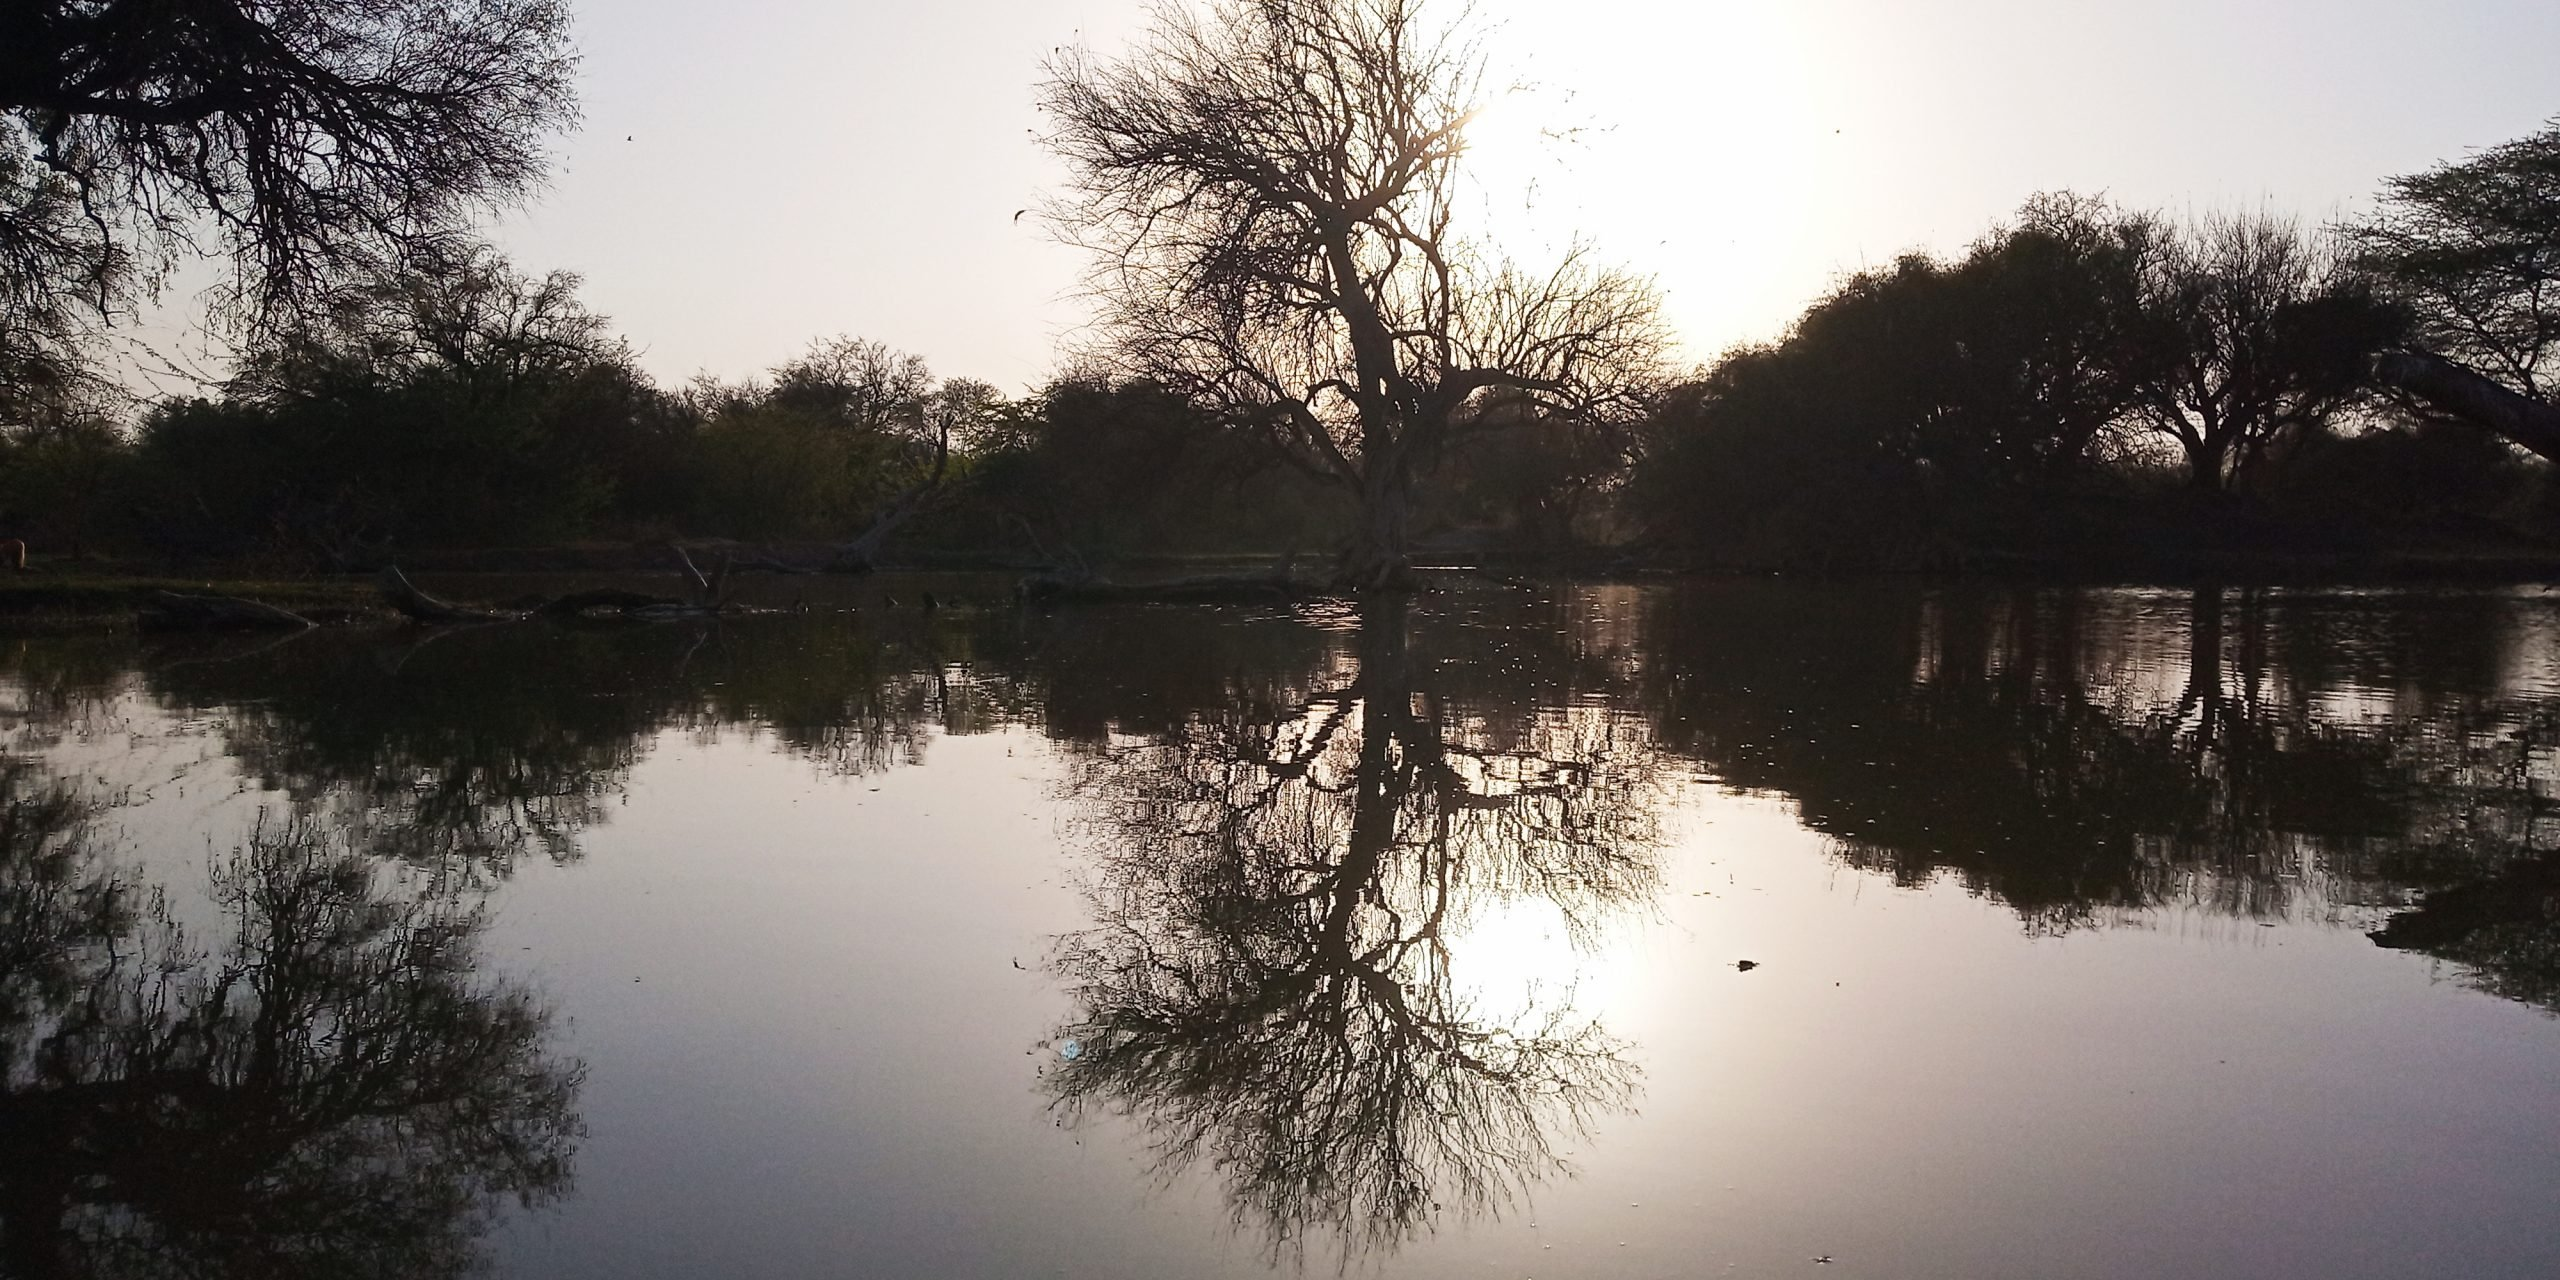 Lake in daylight and surrounded by tree